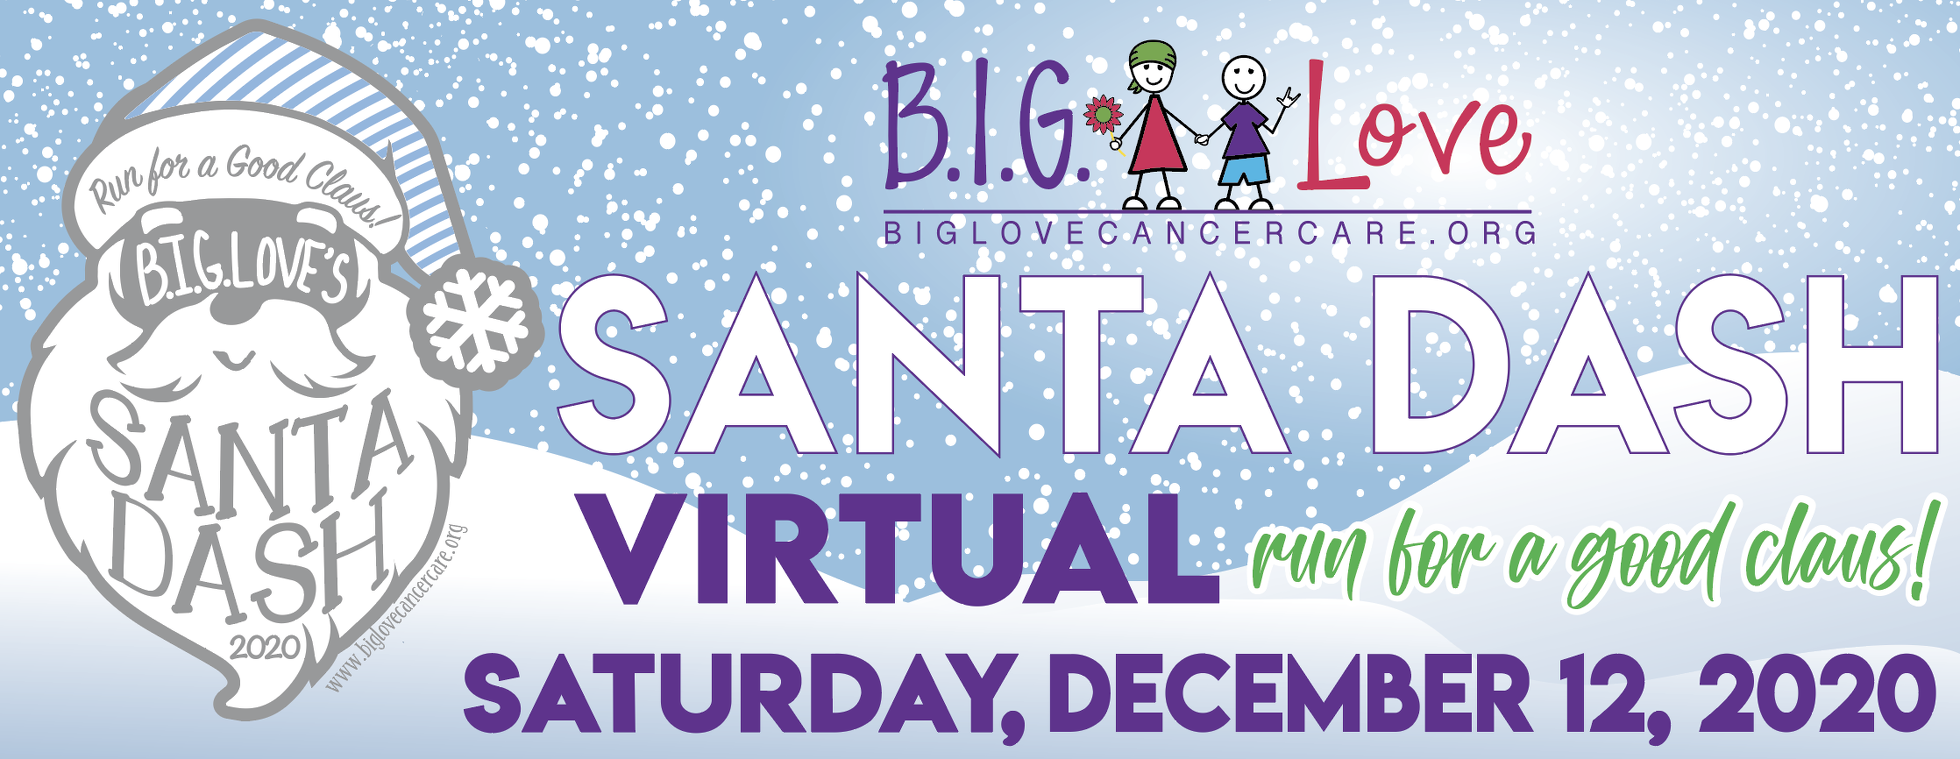 B.I.G. Love Cancer Care 2020 Virtual Santa Dash Run for a Good Claus! (Is Going Virtual!)